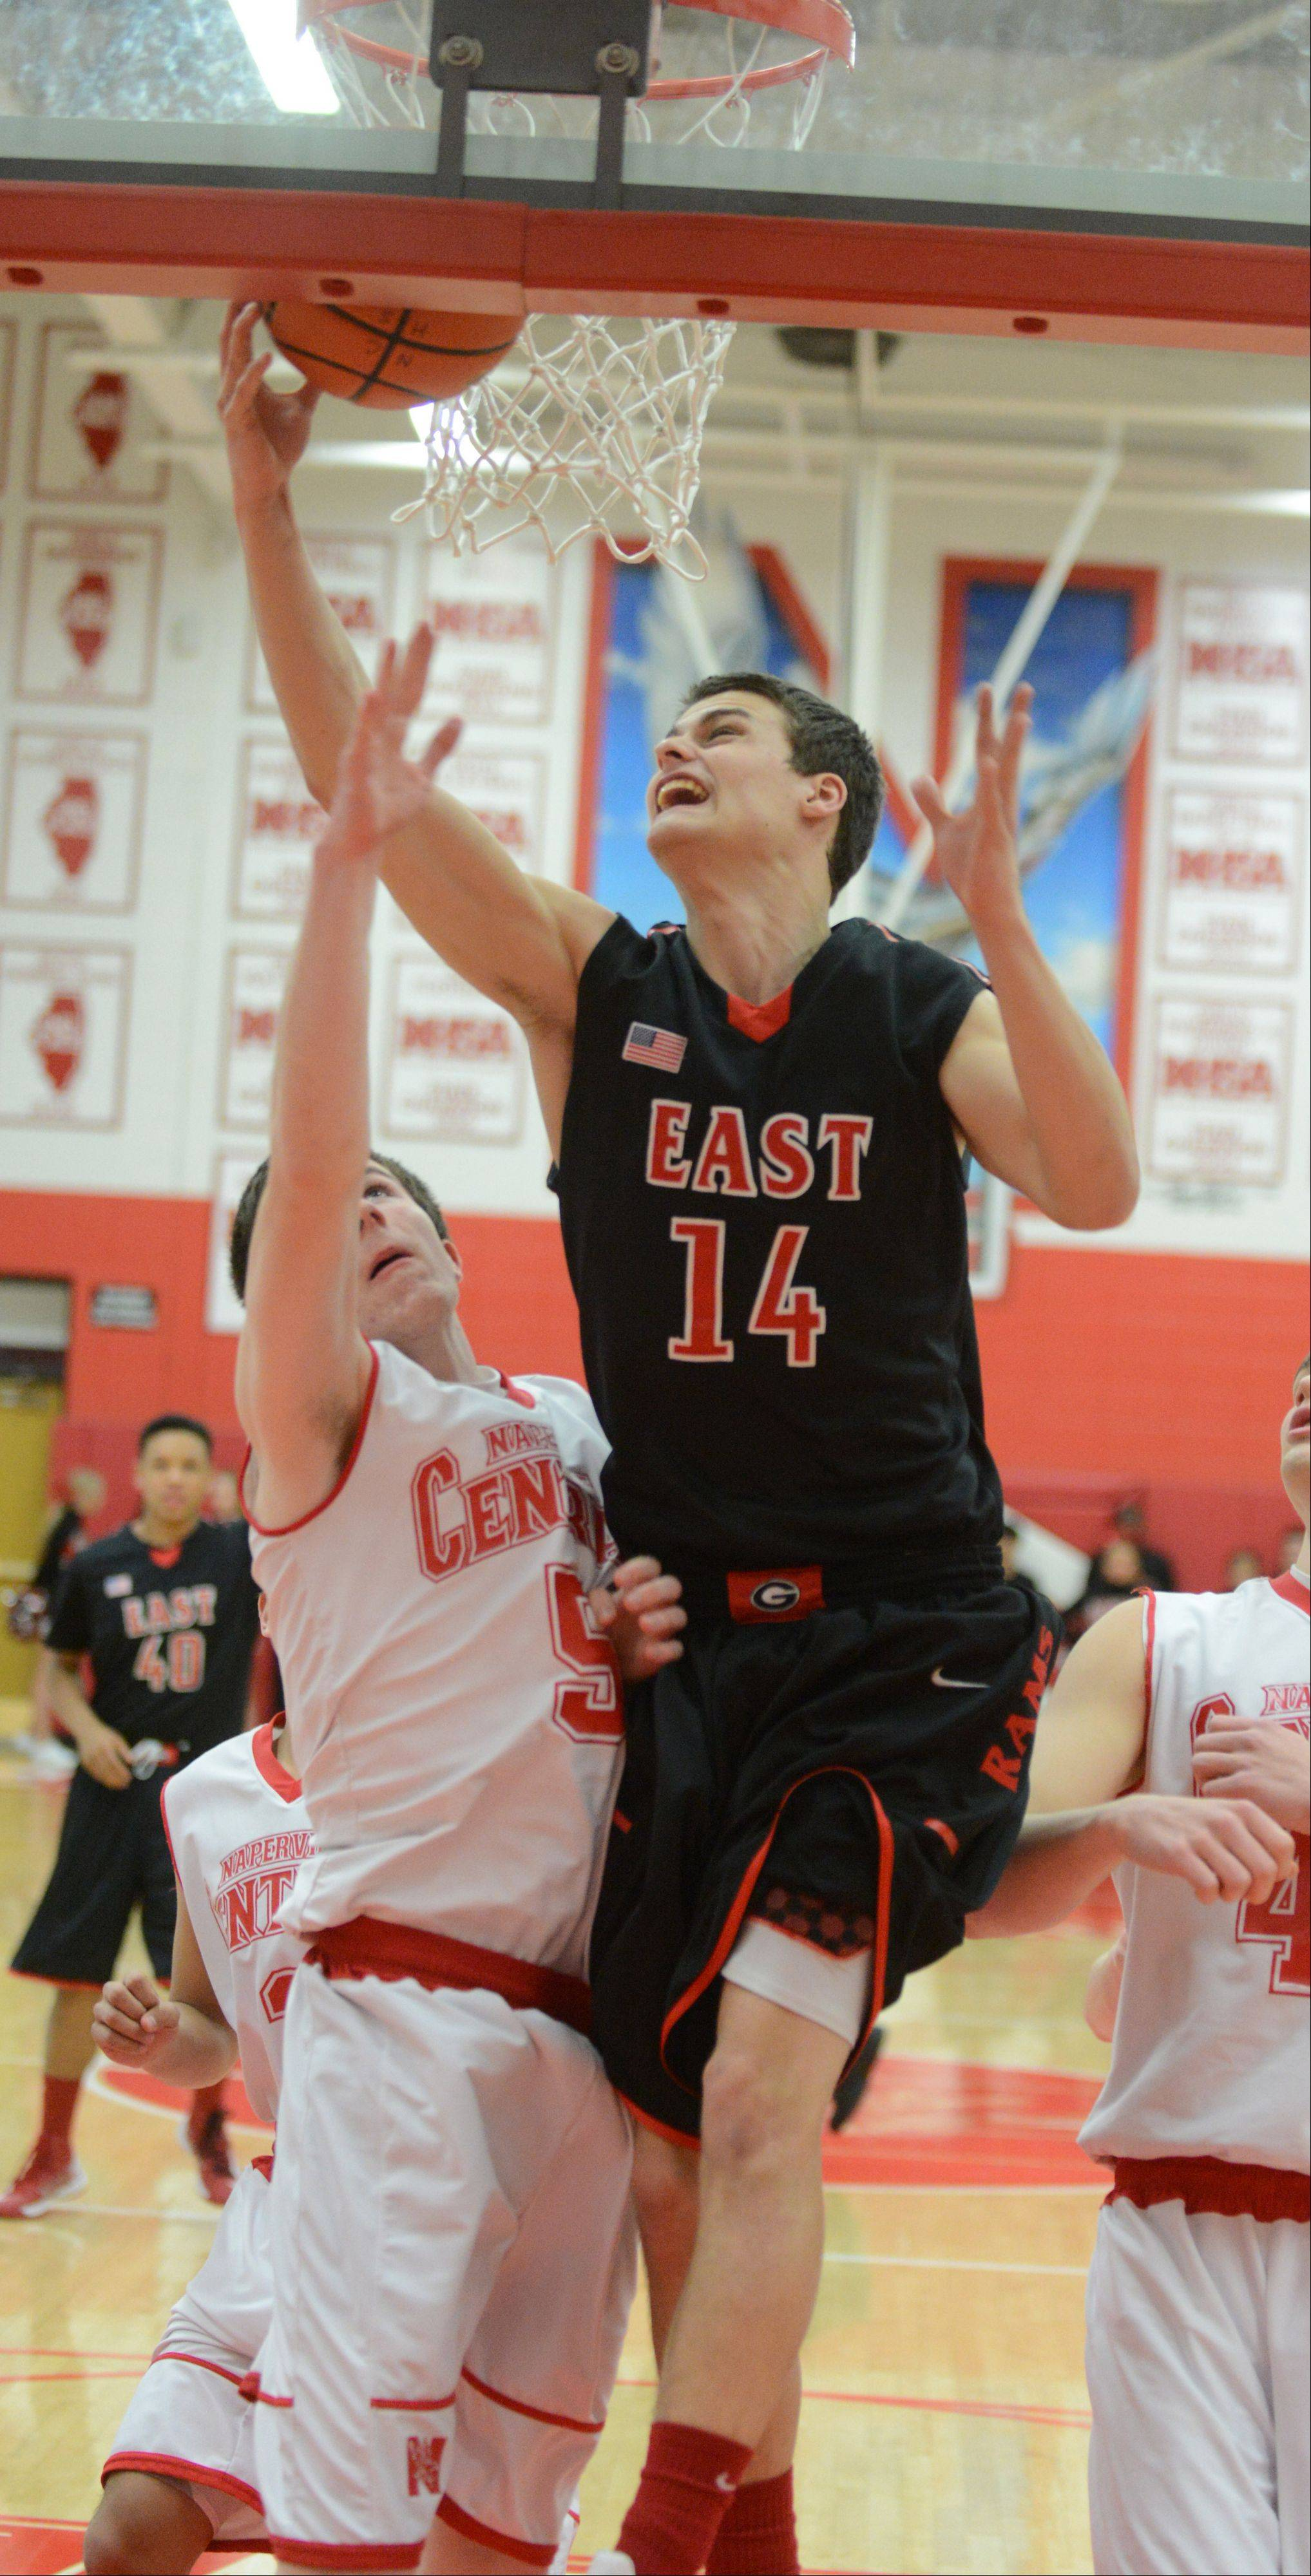 Rob Suntken of Naperville Central,left, and Mike Kjeldsen of Glenbard East go up for the ball.